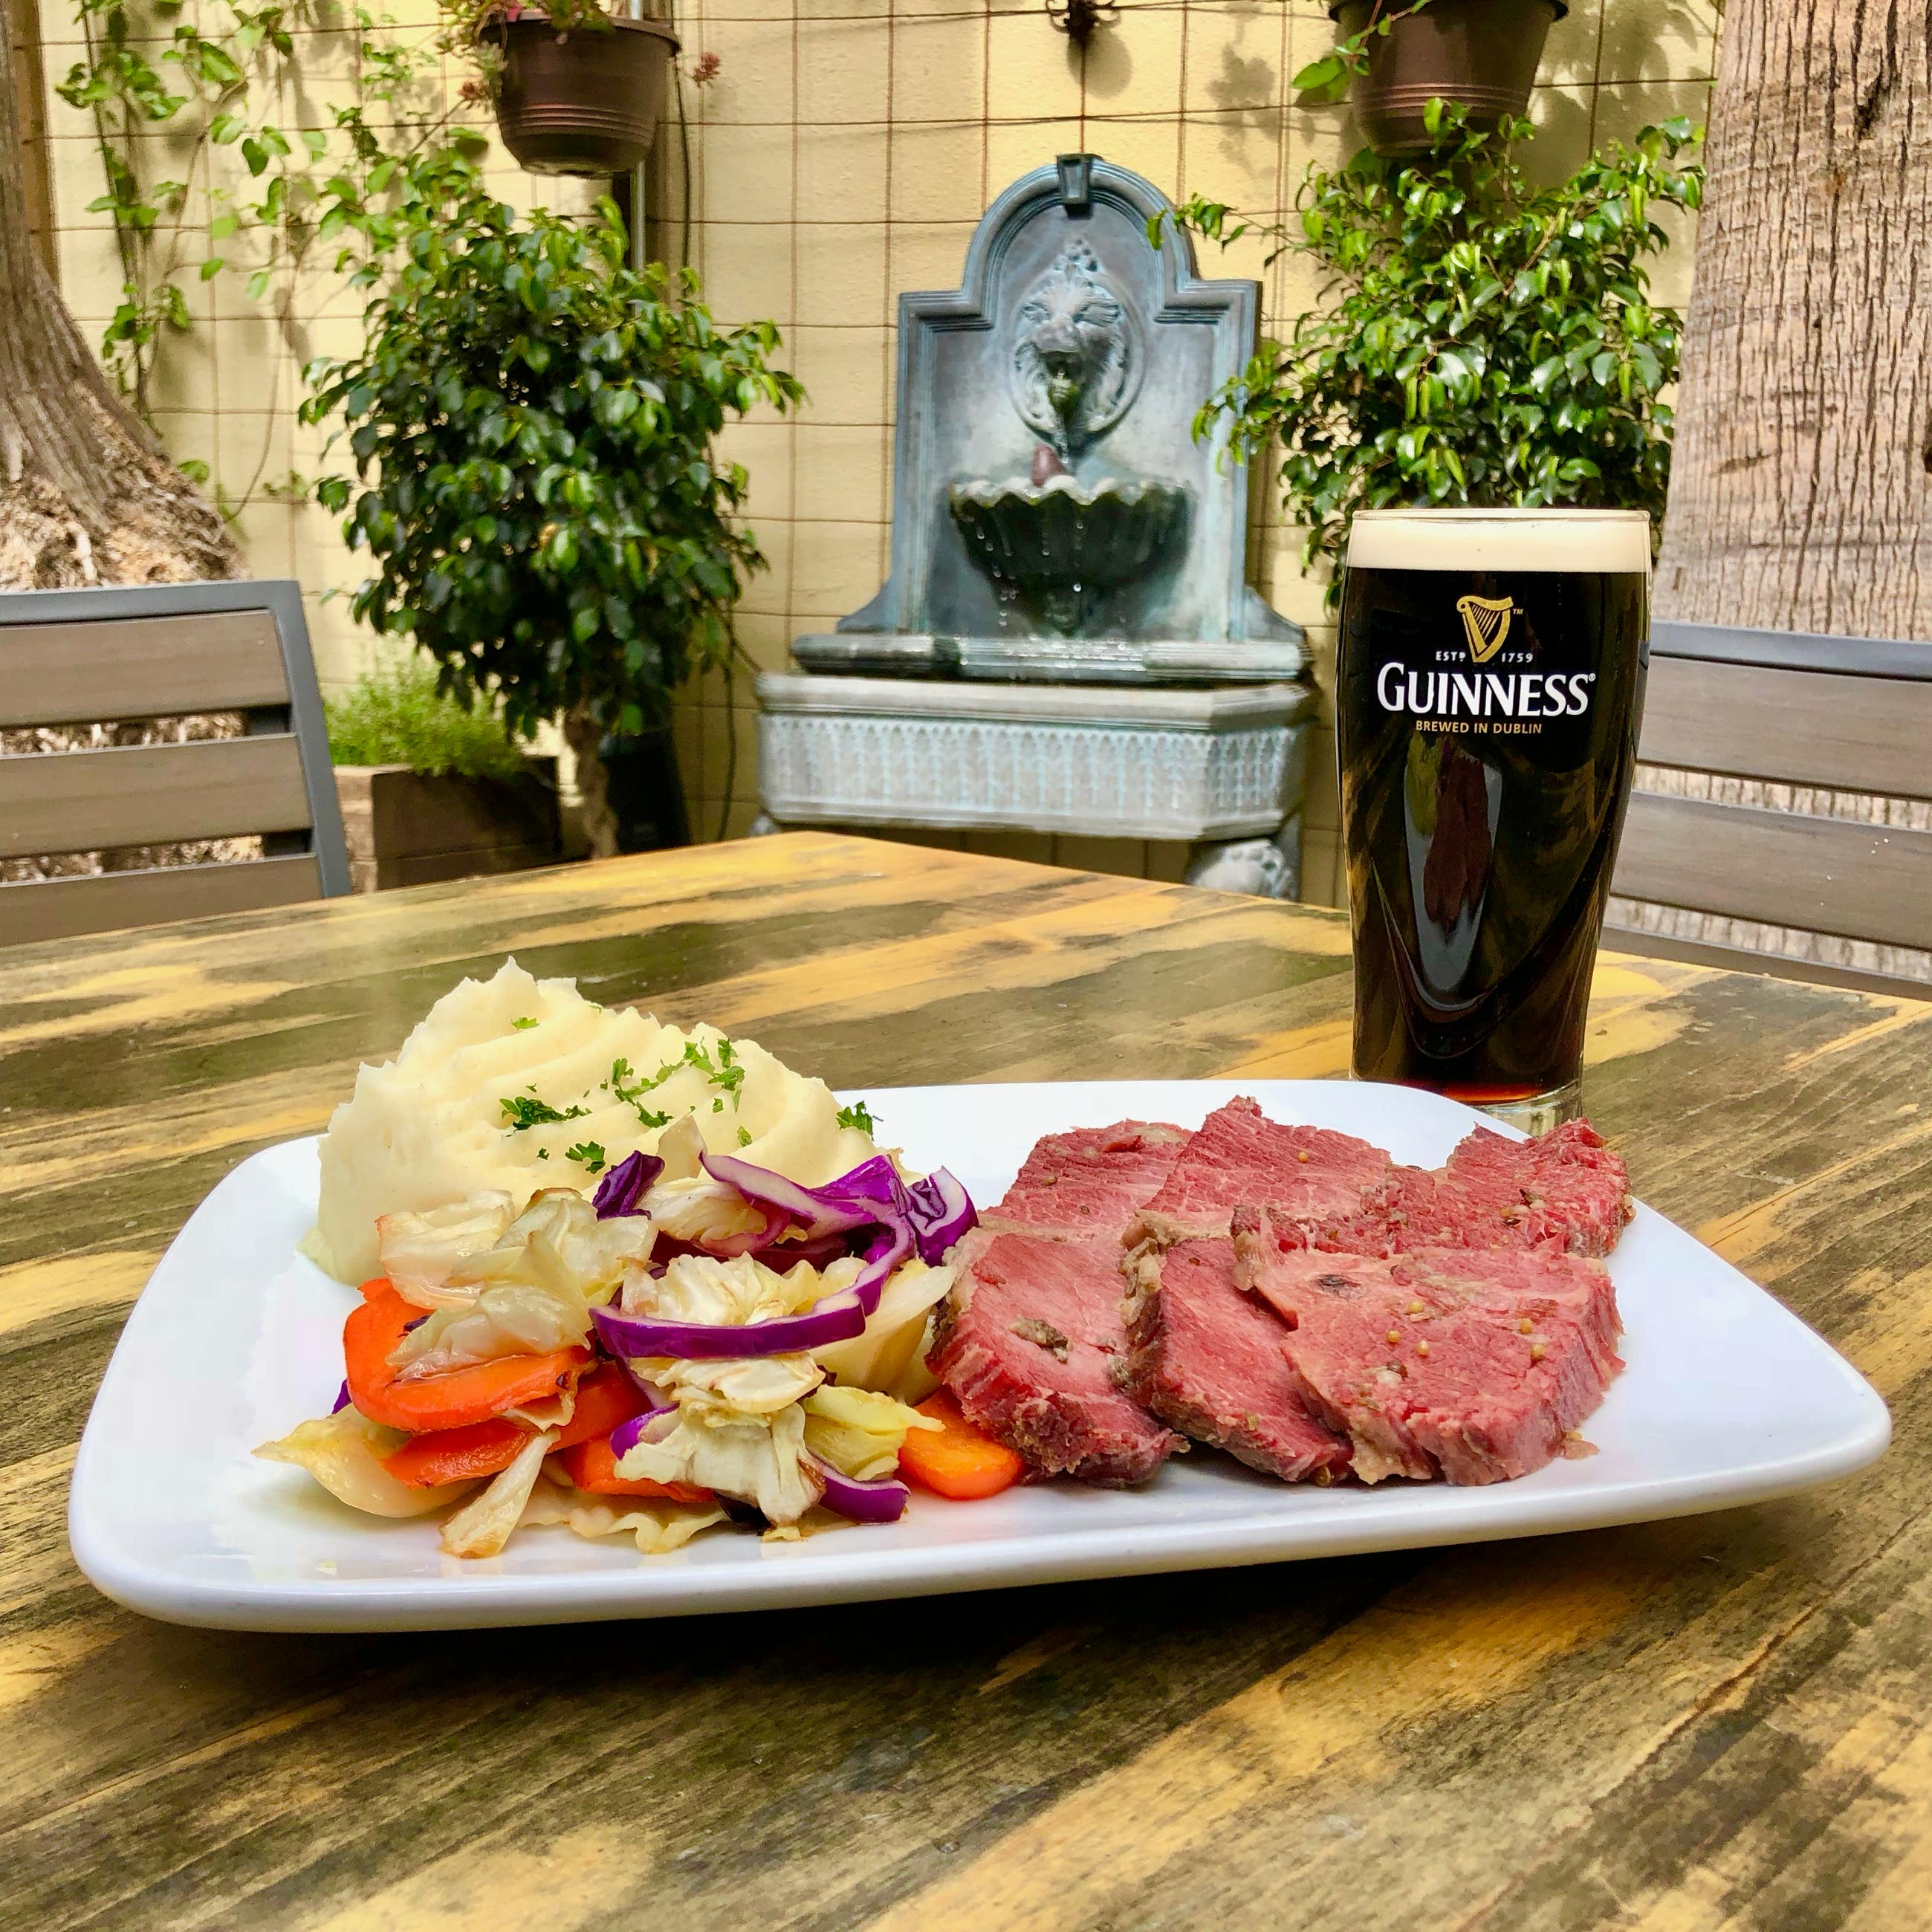 The Cat & Fiddle Guinness and Corned Beef & Cabbage